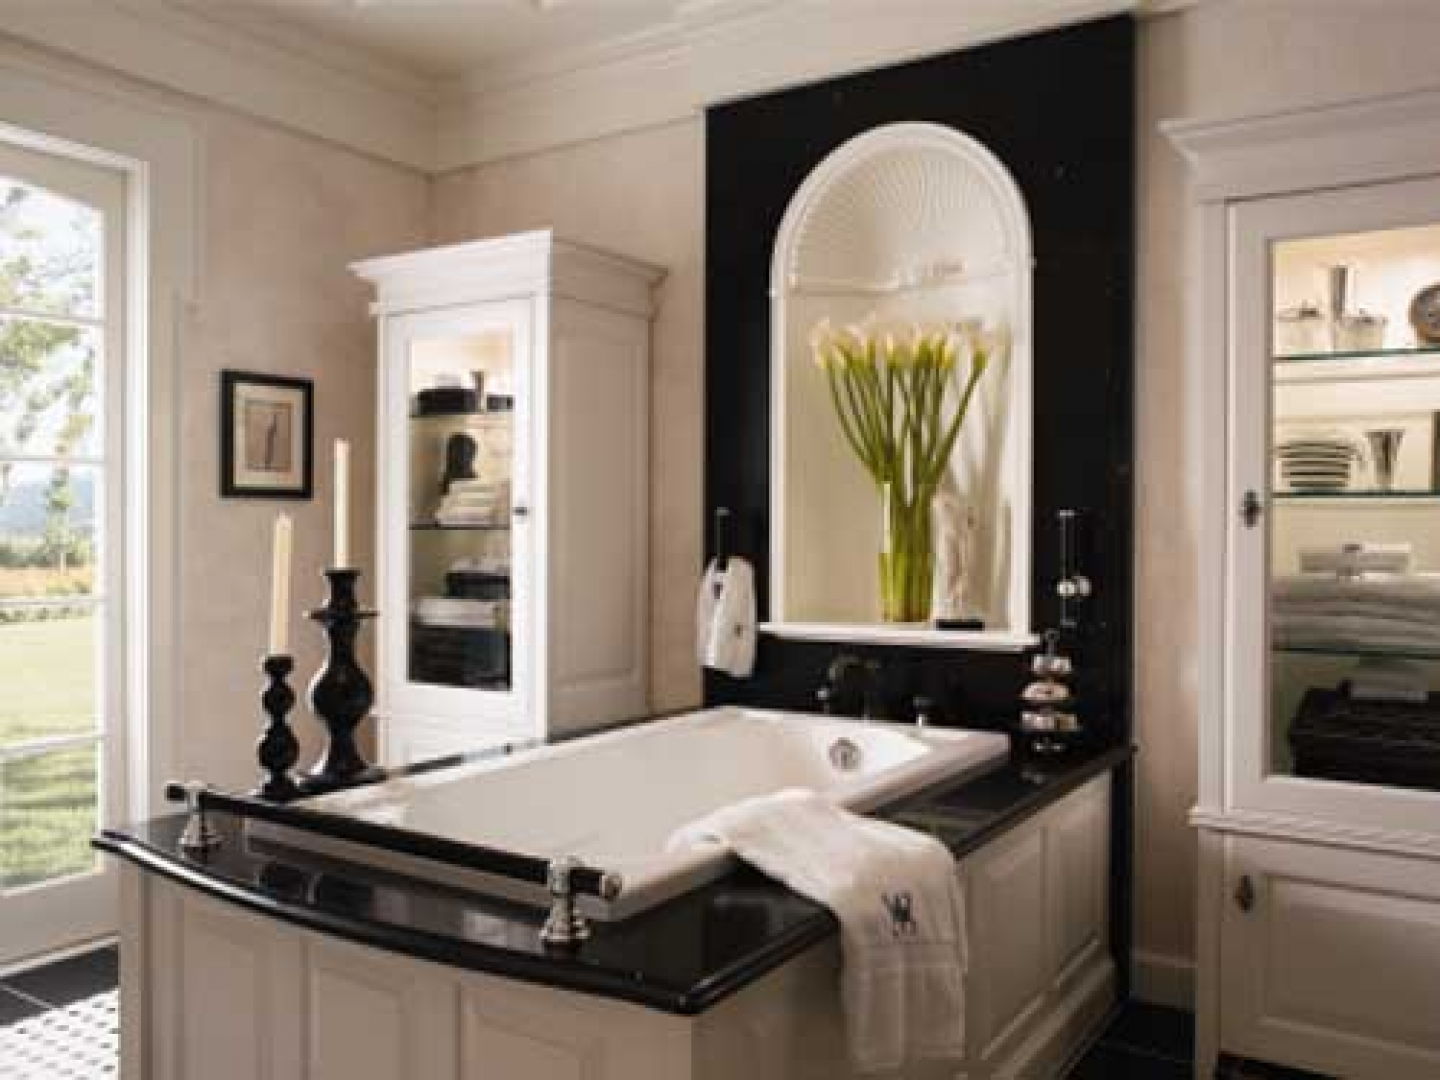 Bathroom decorating ideas new trendy washroom designs for Bathroom decor 2012